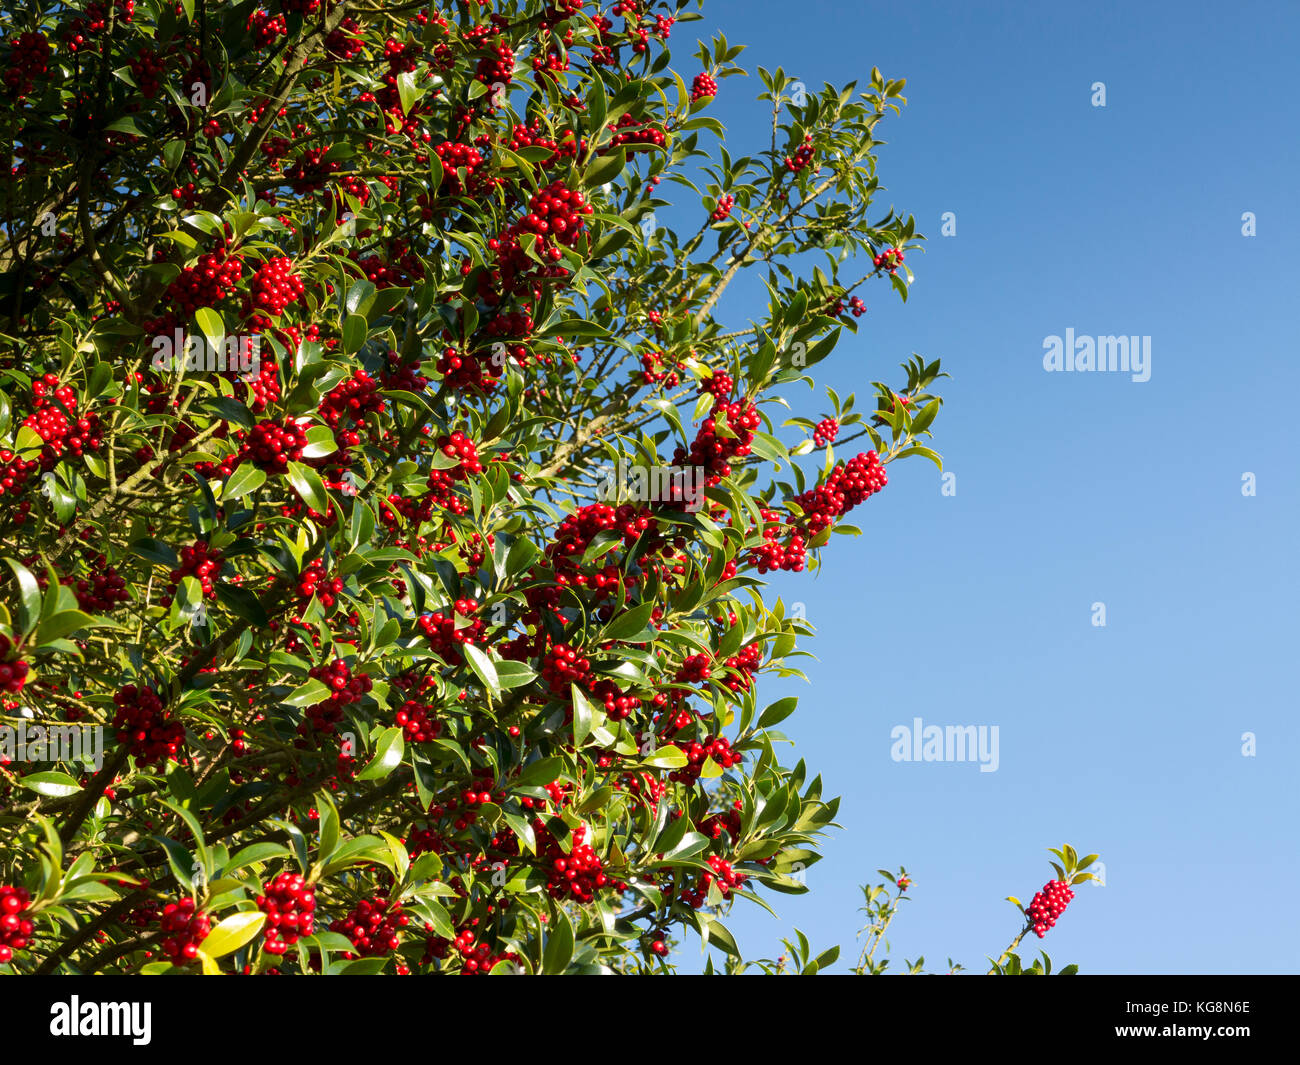 Section of holly tree, Ilex rotunda, with berries against a pure blue sky. Suffolk ,England - Stock Image